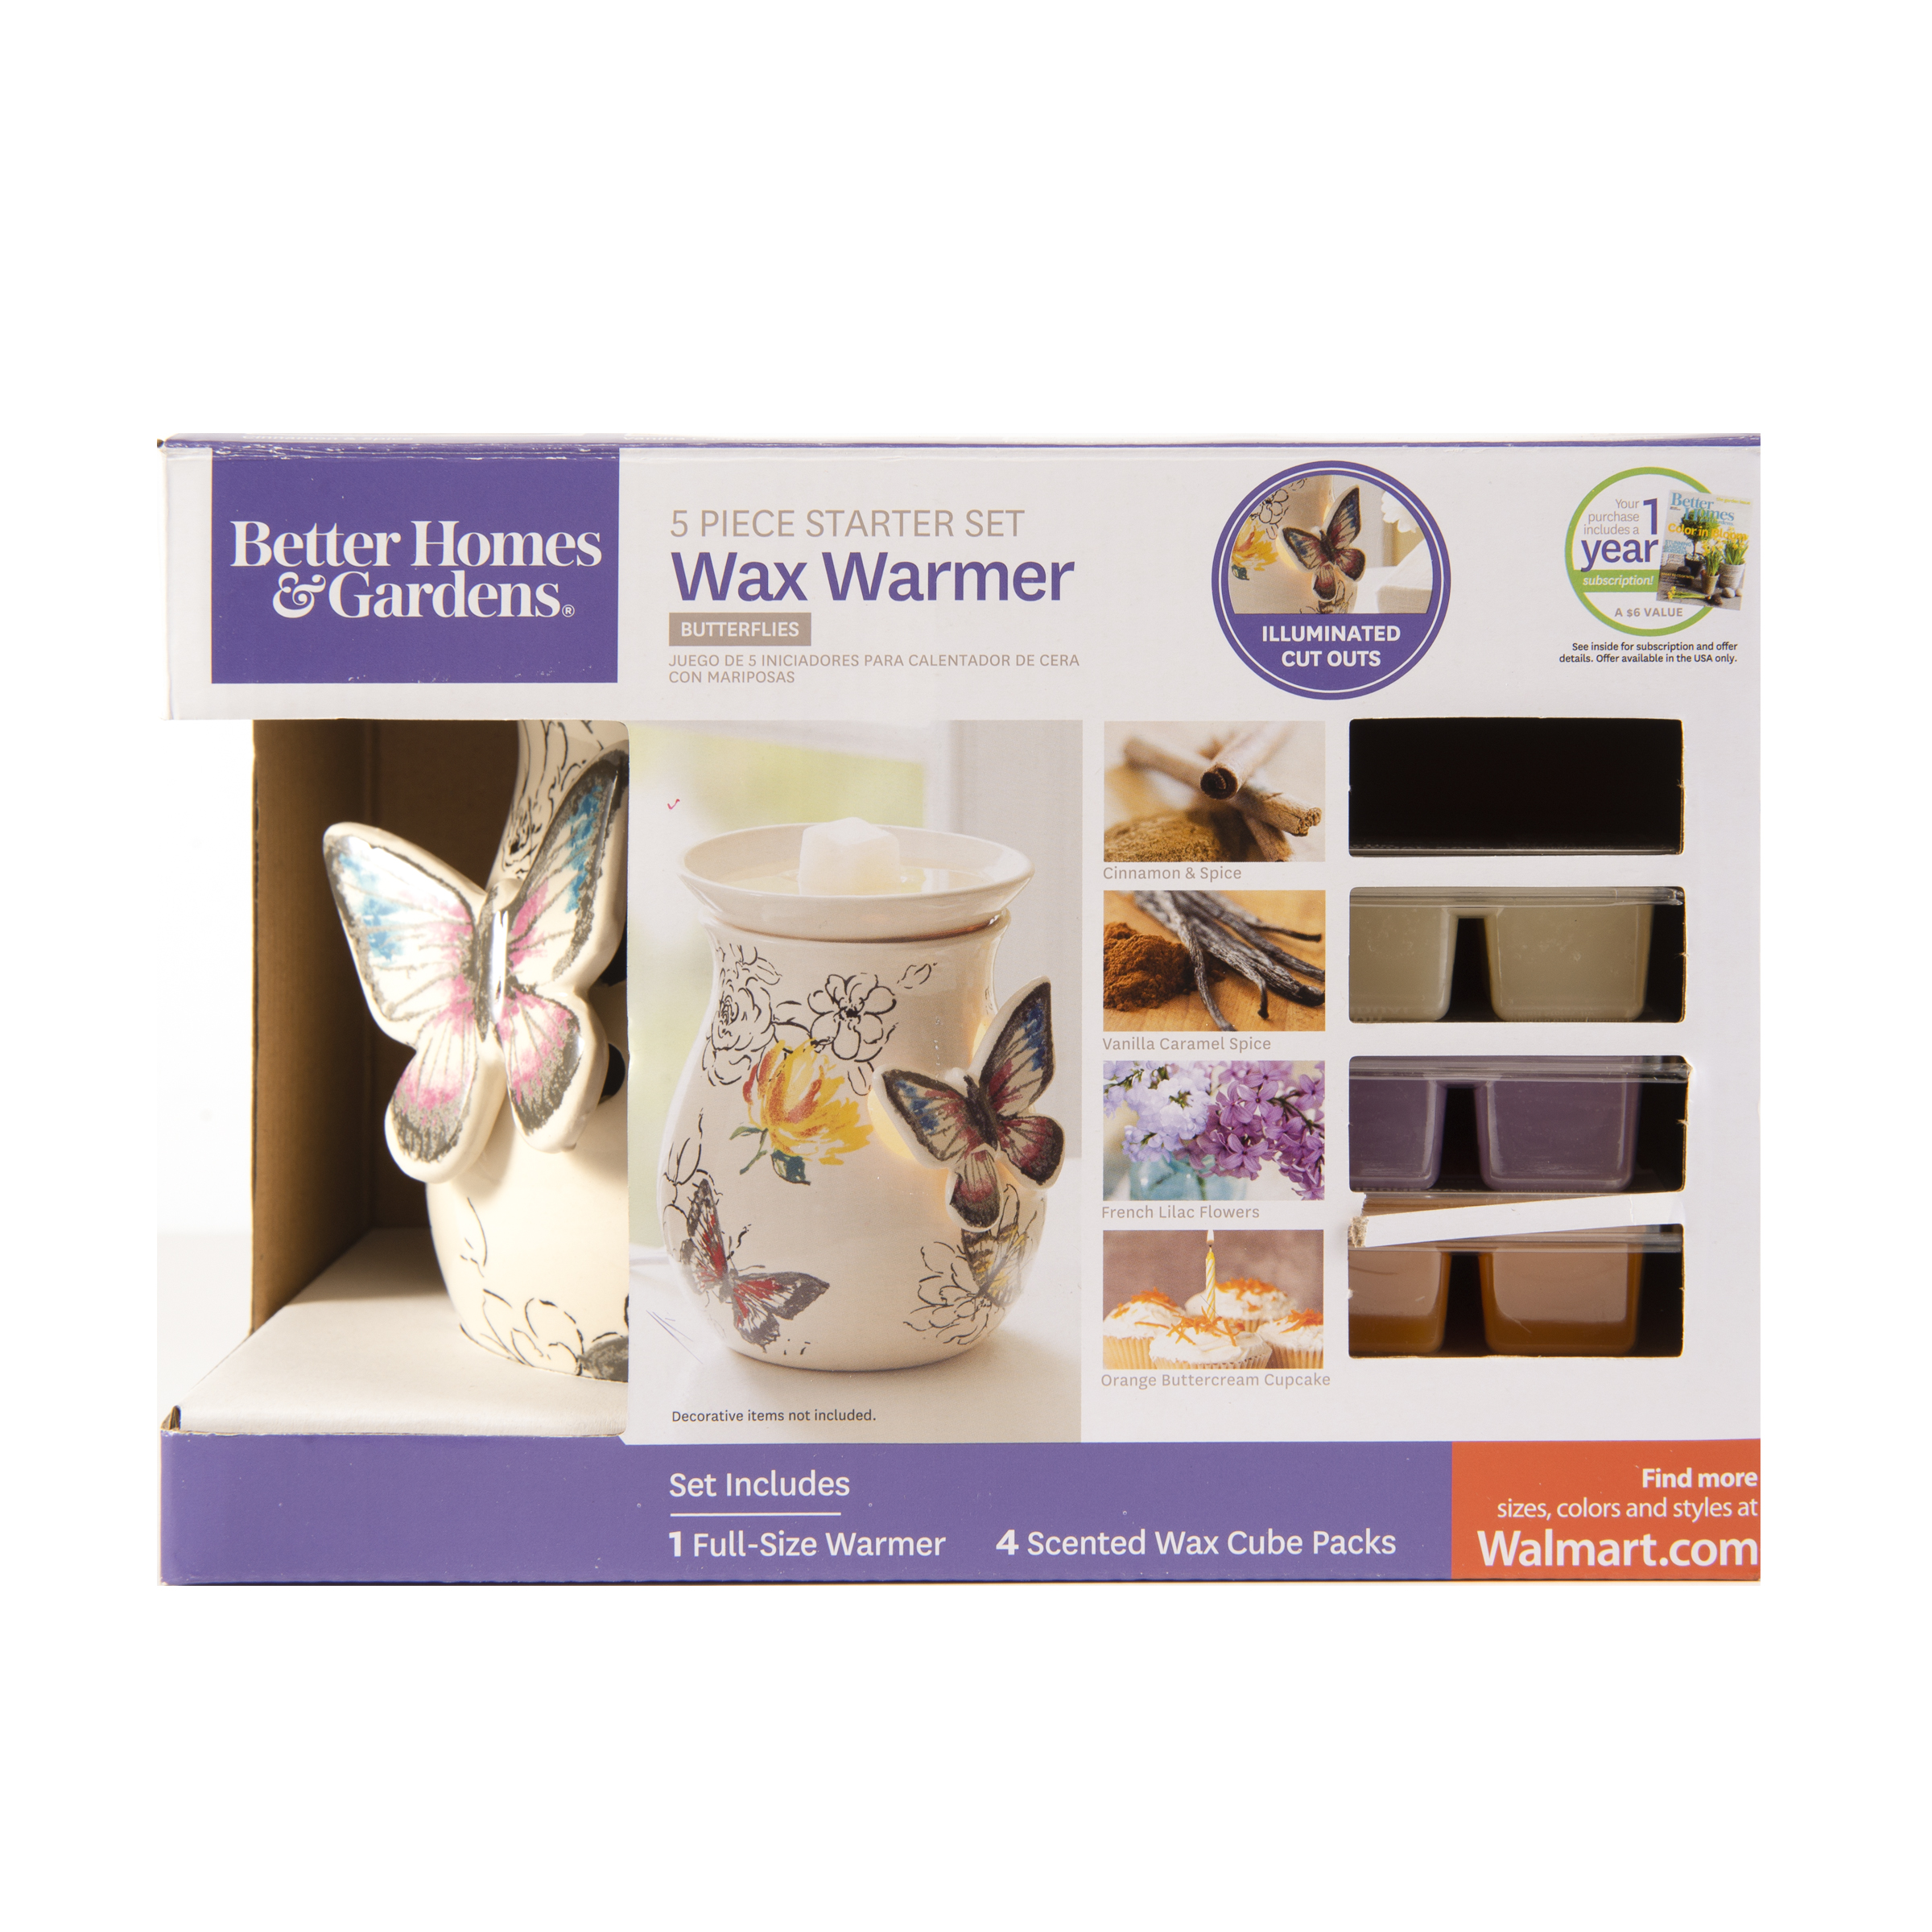 Better Homes & Gardens Butterflies Full-Size Wax Warmer Starter Set